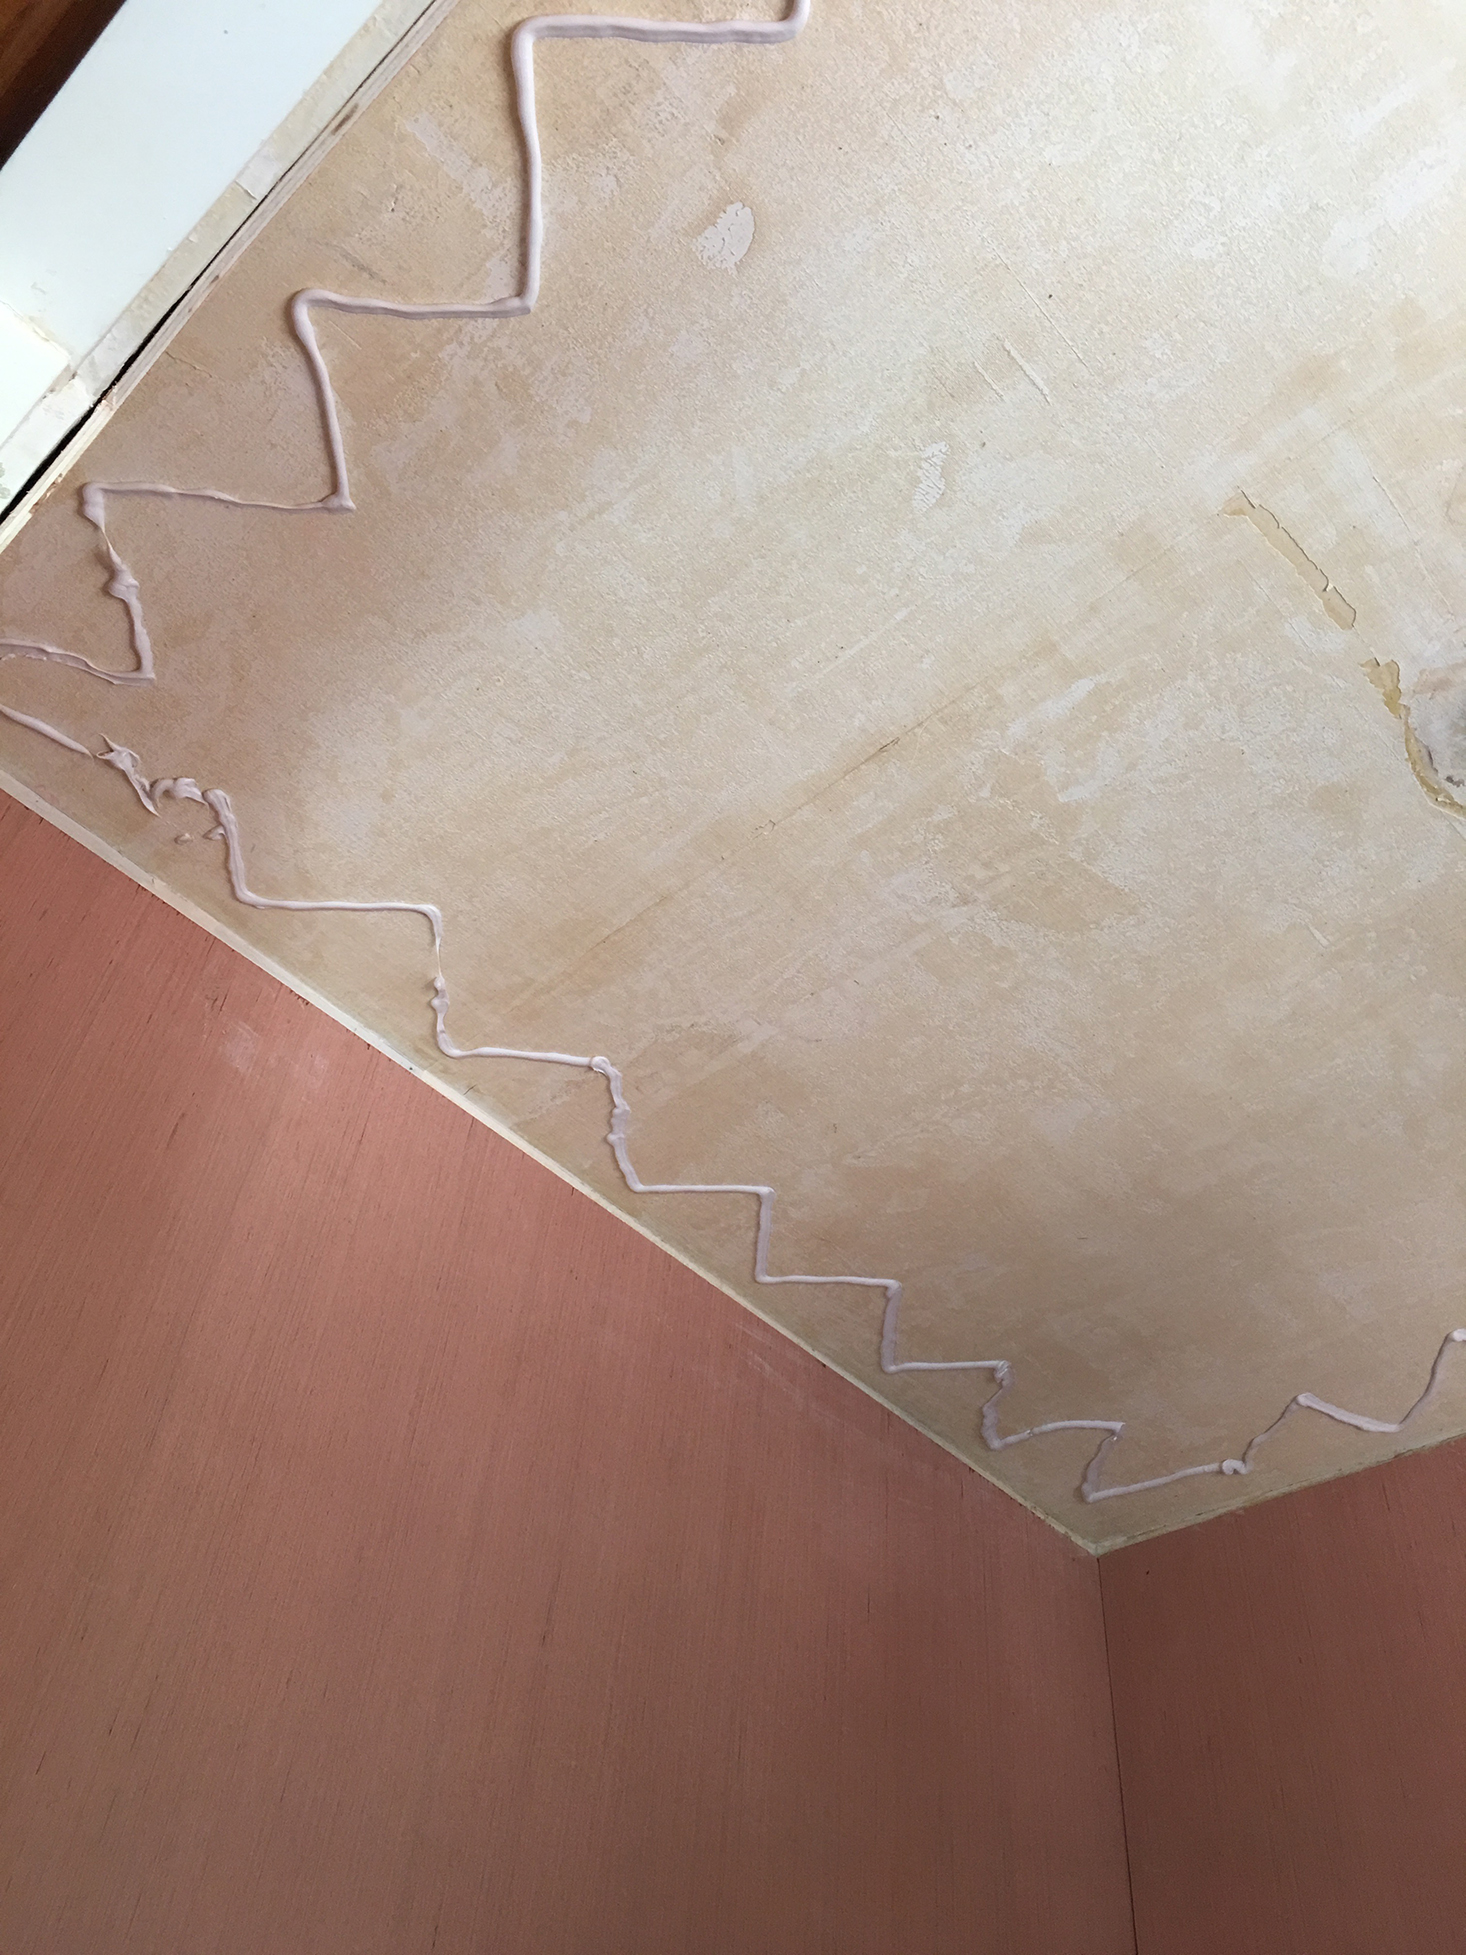 Gluing the Ceiling | The Sweet Beast Blog